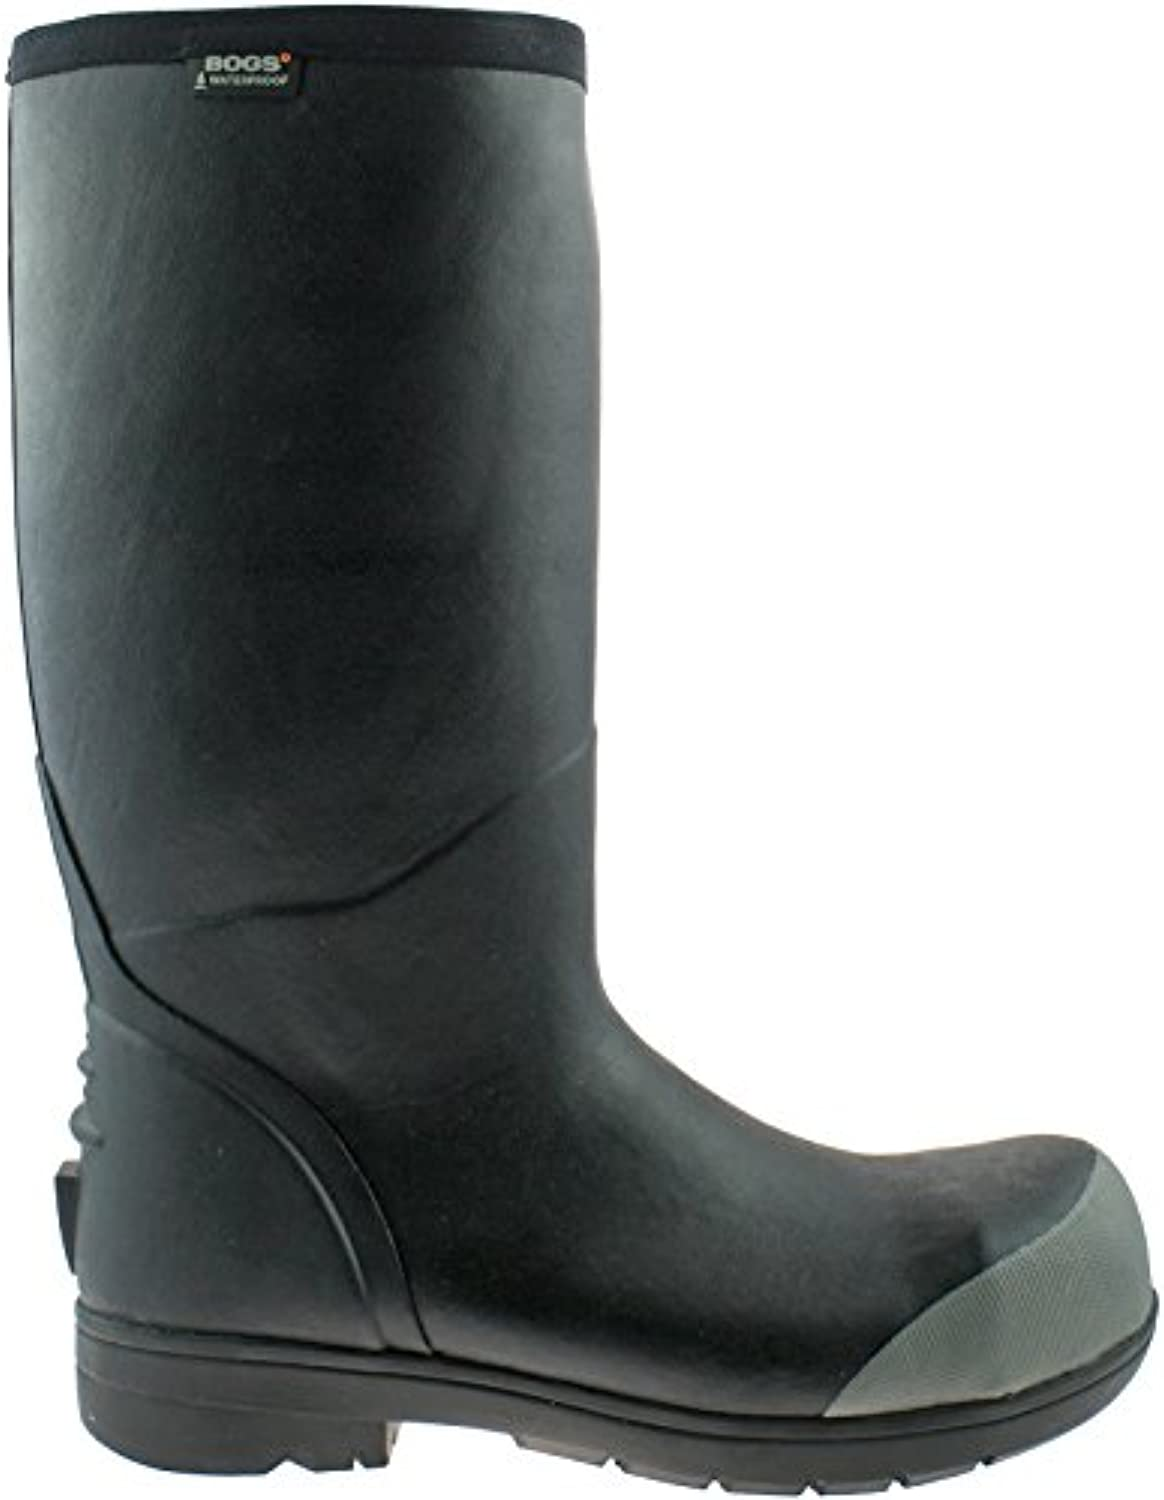 Bogs Mens Steel Toe Safety Wellies Boots Size UK 6 13 Food Pro High 71477CE UK 6 (EU 40)